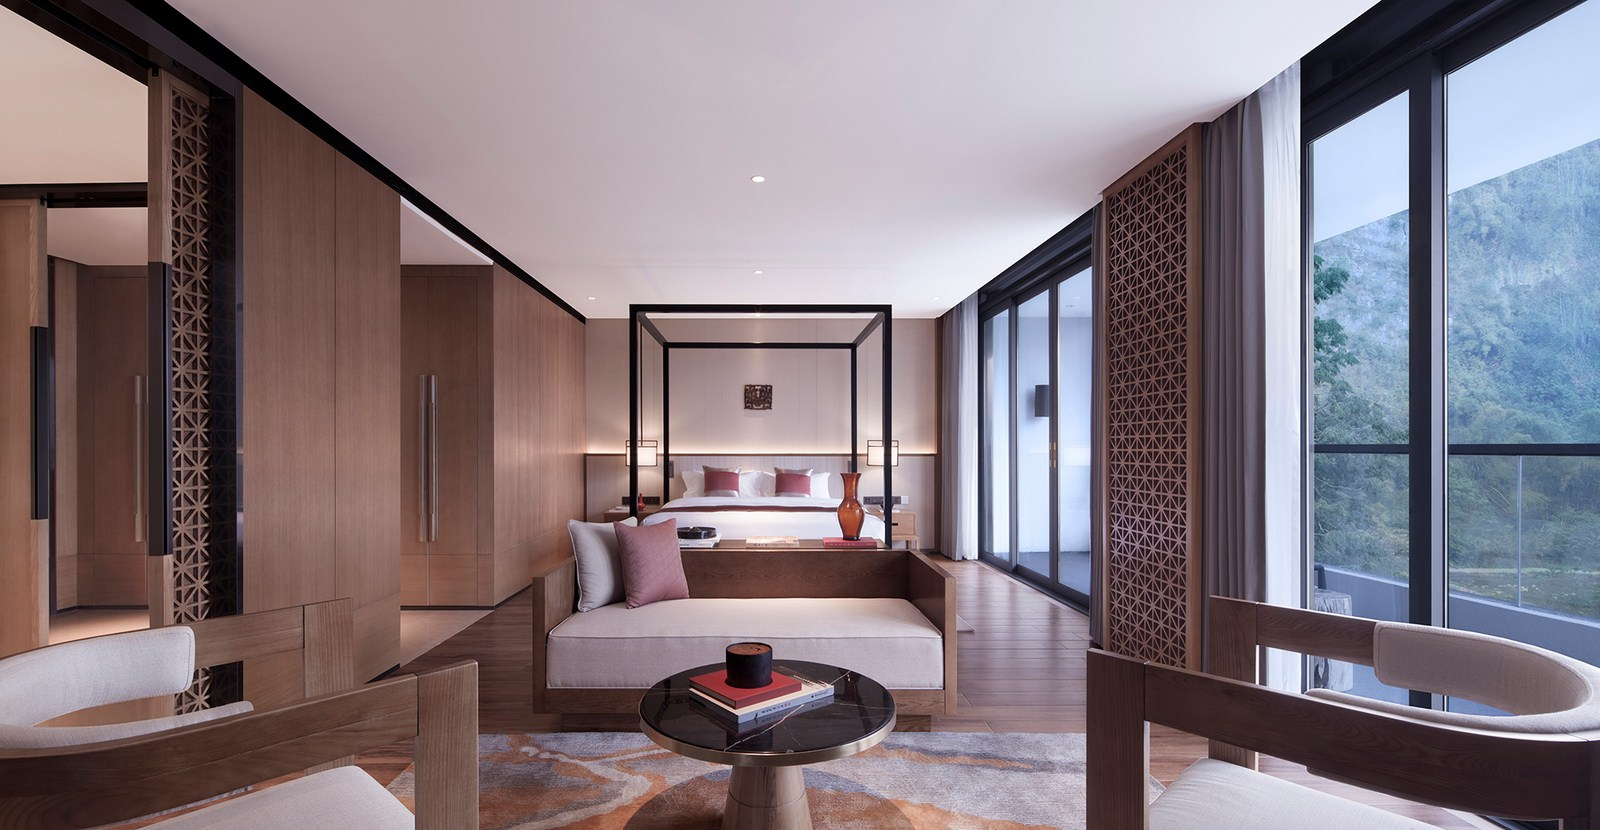 Blossom Dreams Hotel (Jima) By Co-Direction Design - Sheet33